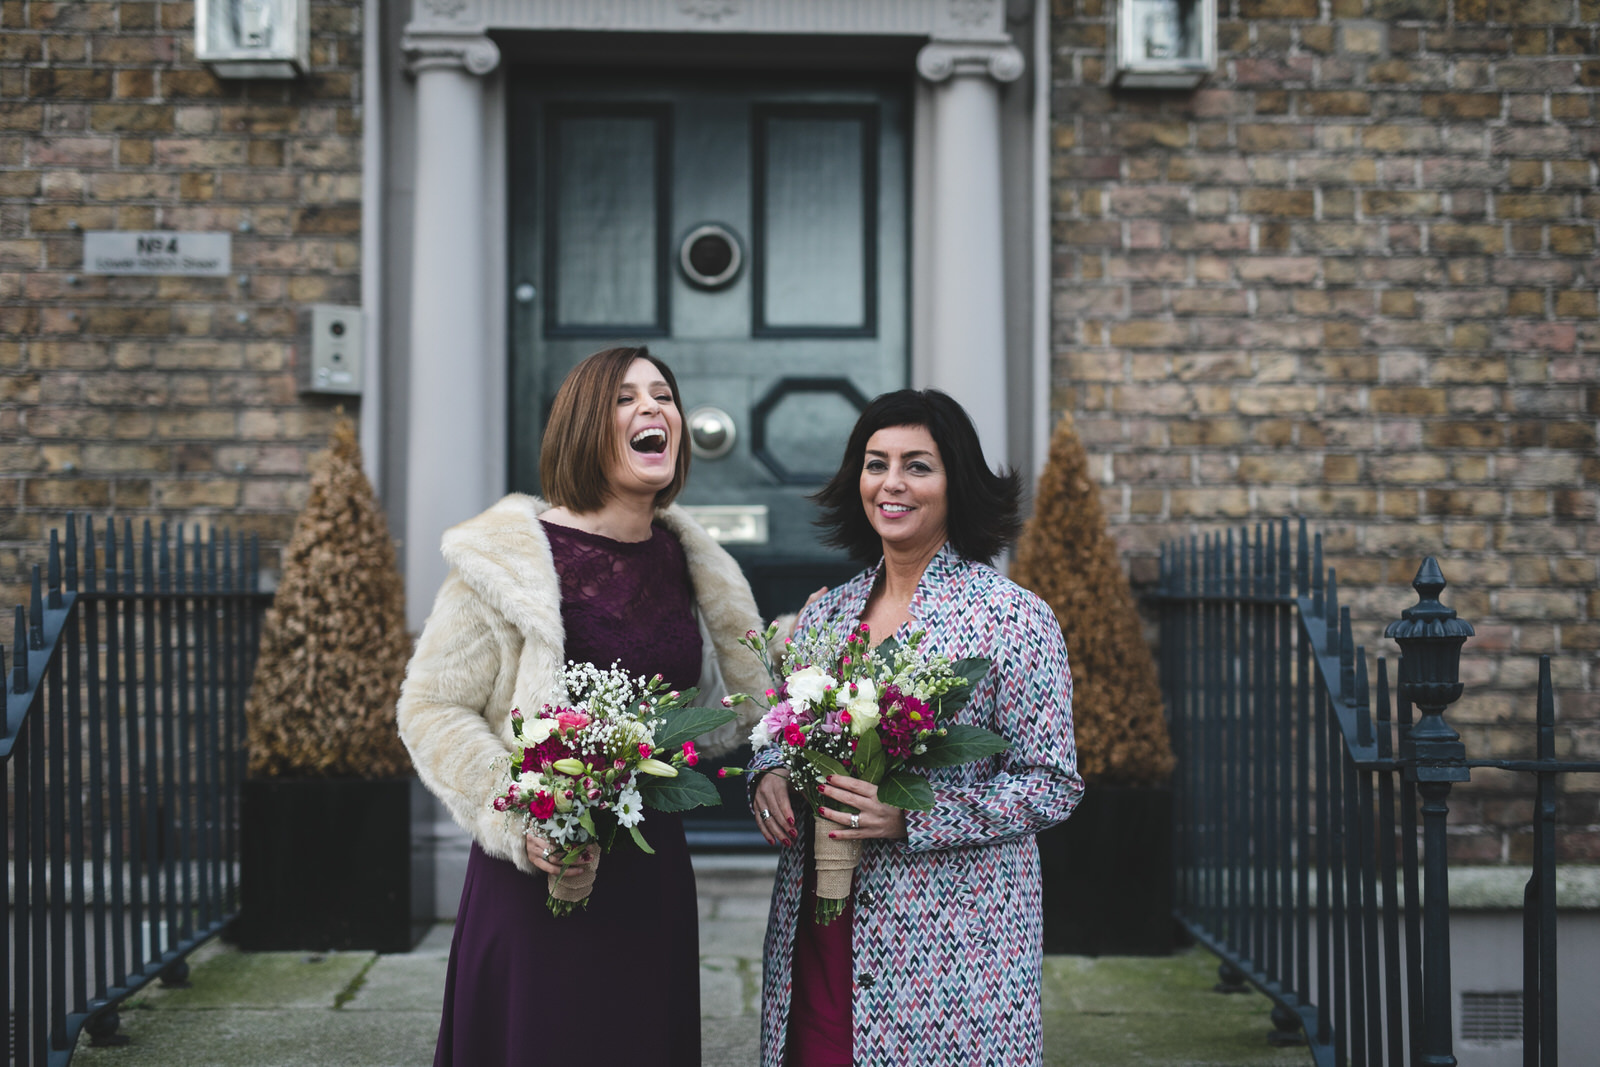 Portraits at wedding in House on Leeson St